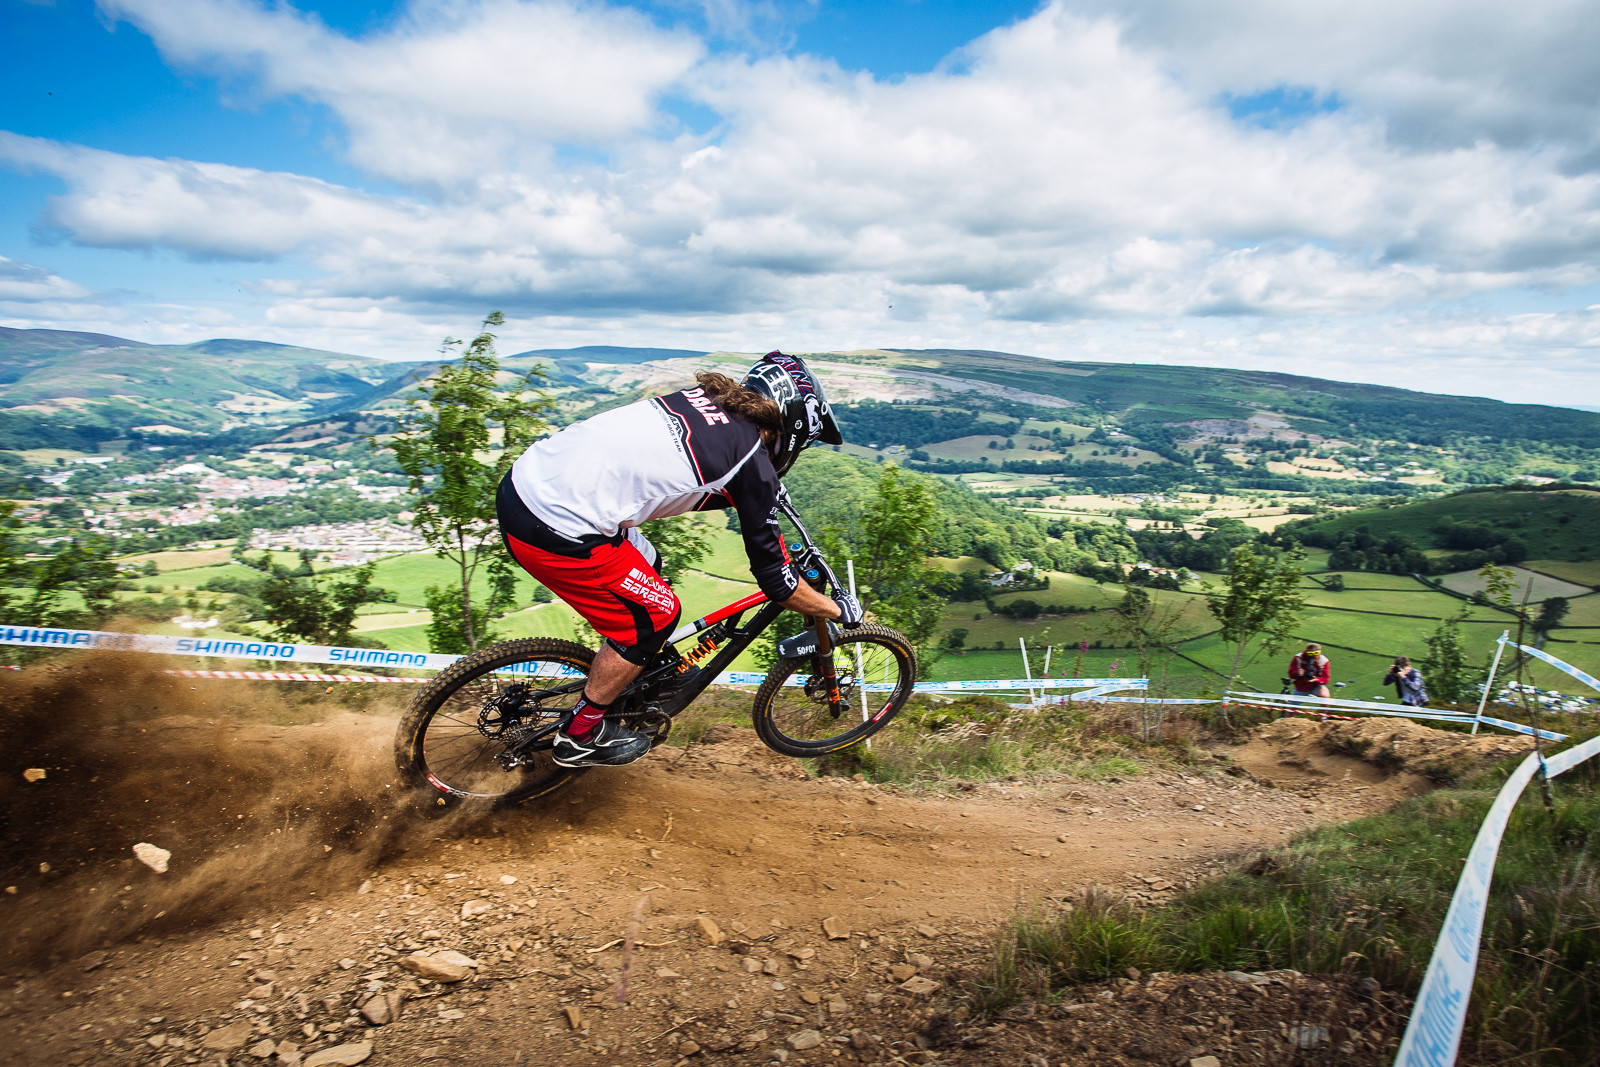 Sam Dale - 2015 British National Champs Downhill - 2015 British National Champs Downhill Photos - Mountain Biking Pictures - Vital MTB